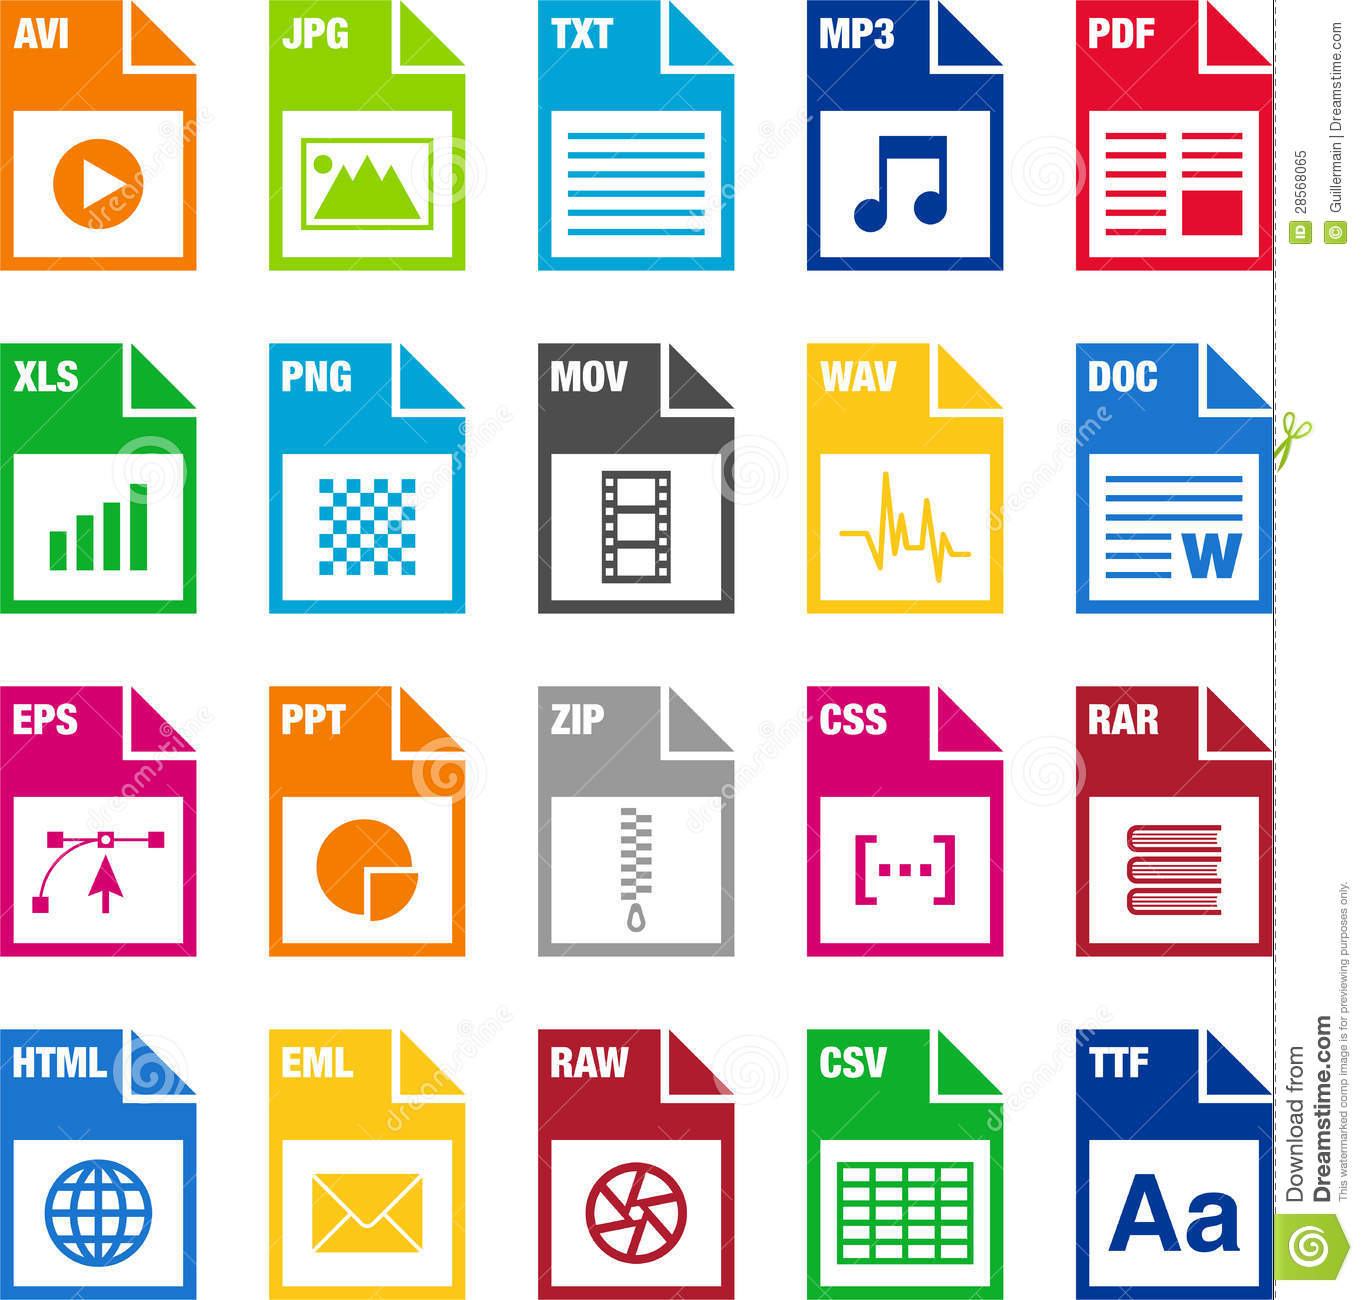 14 Search Icon File Format Images